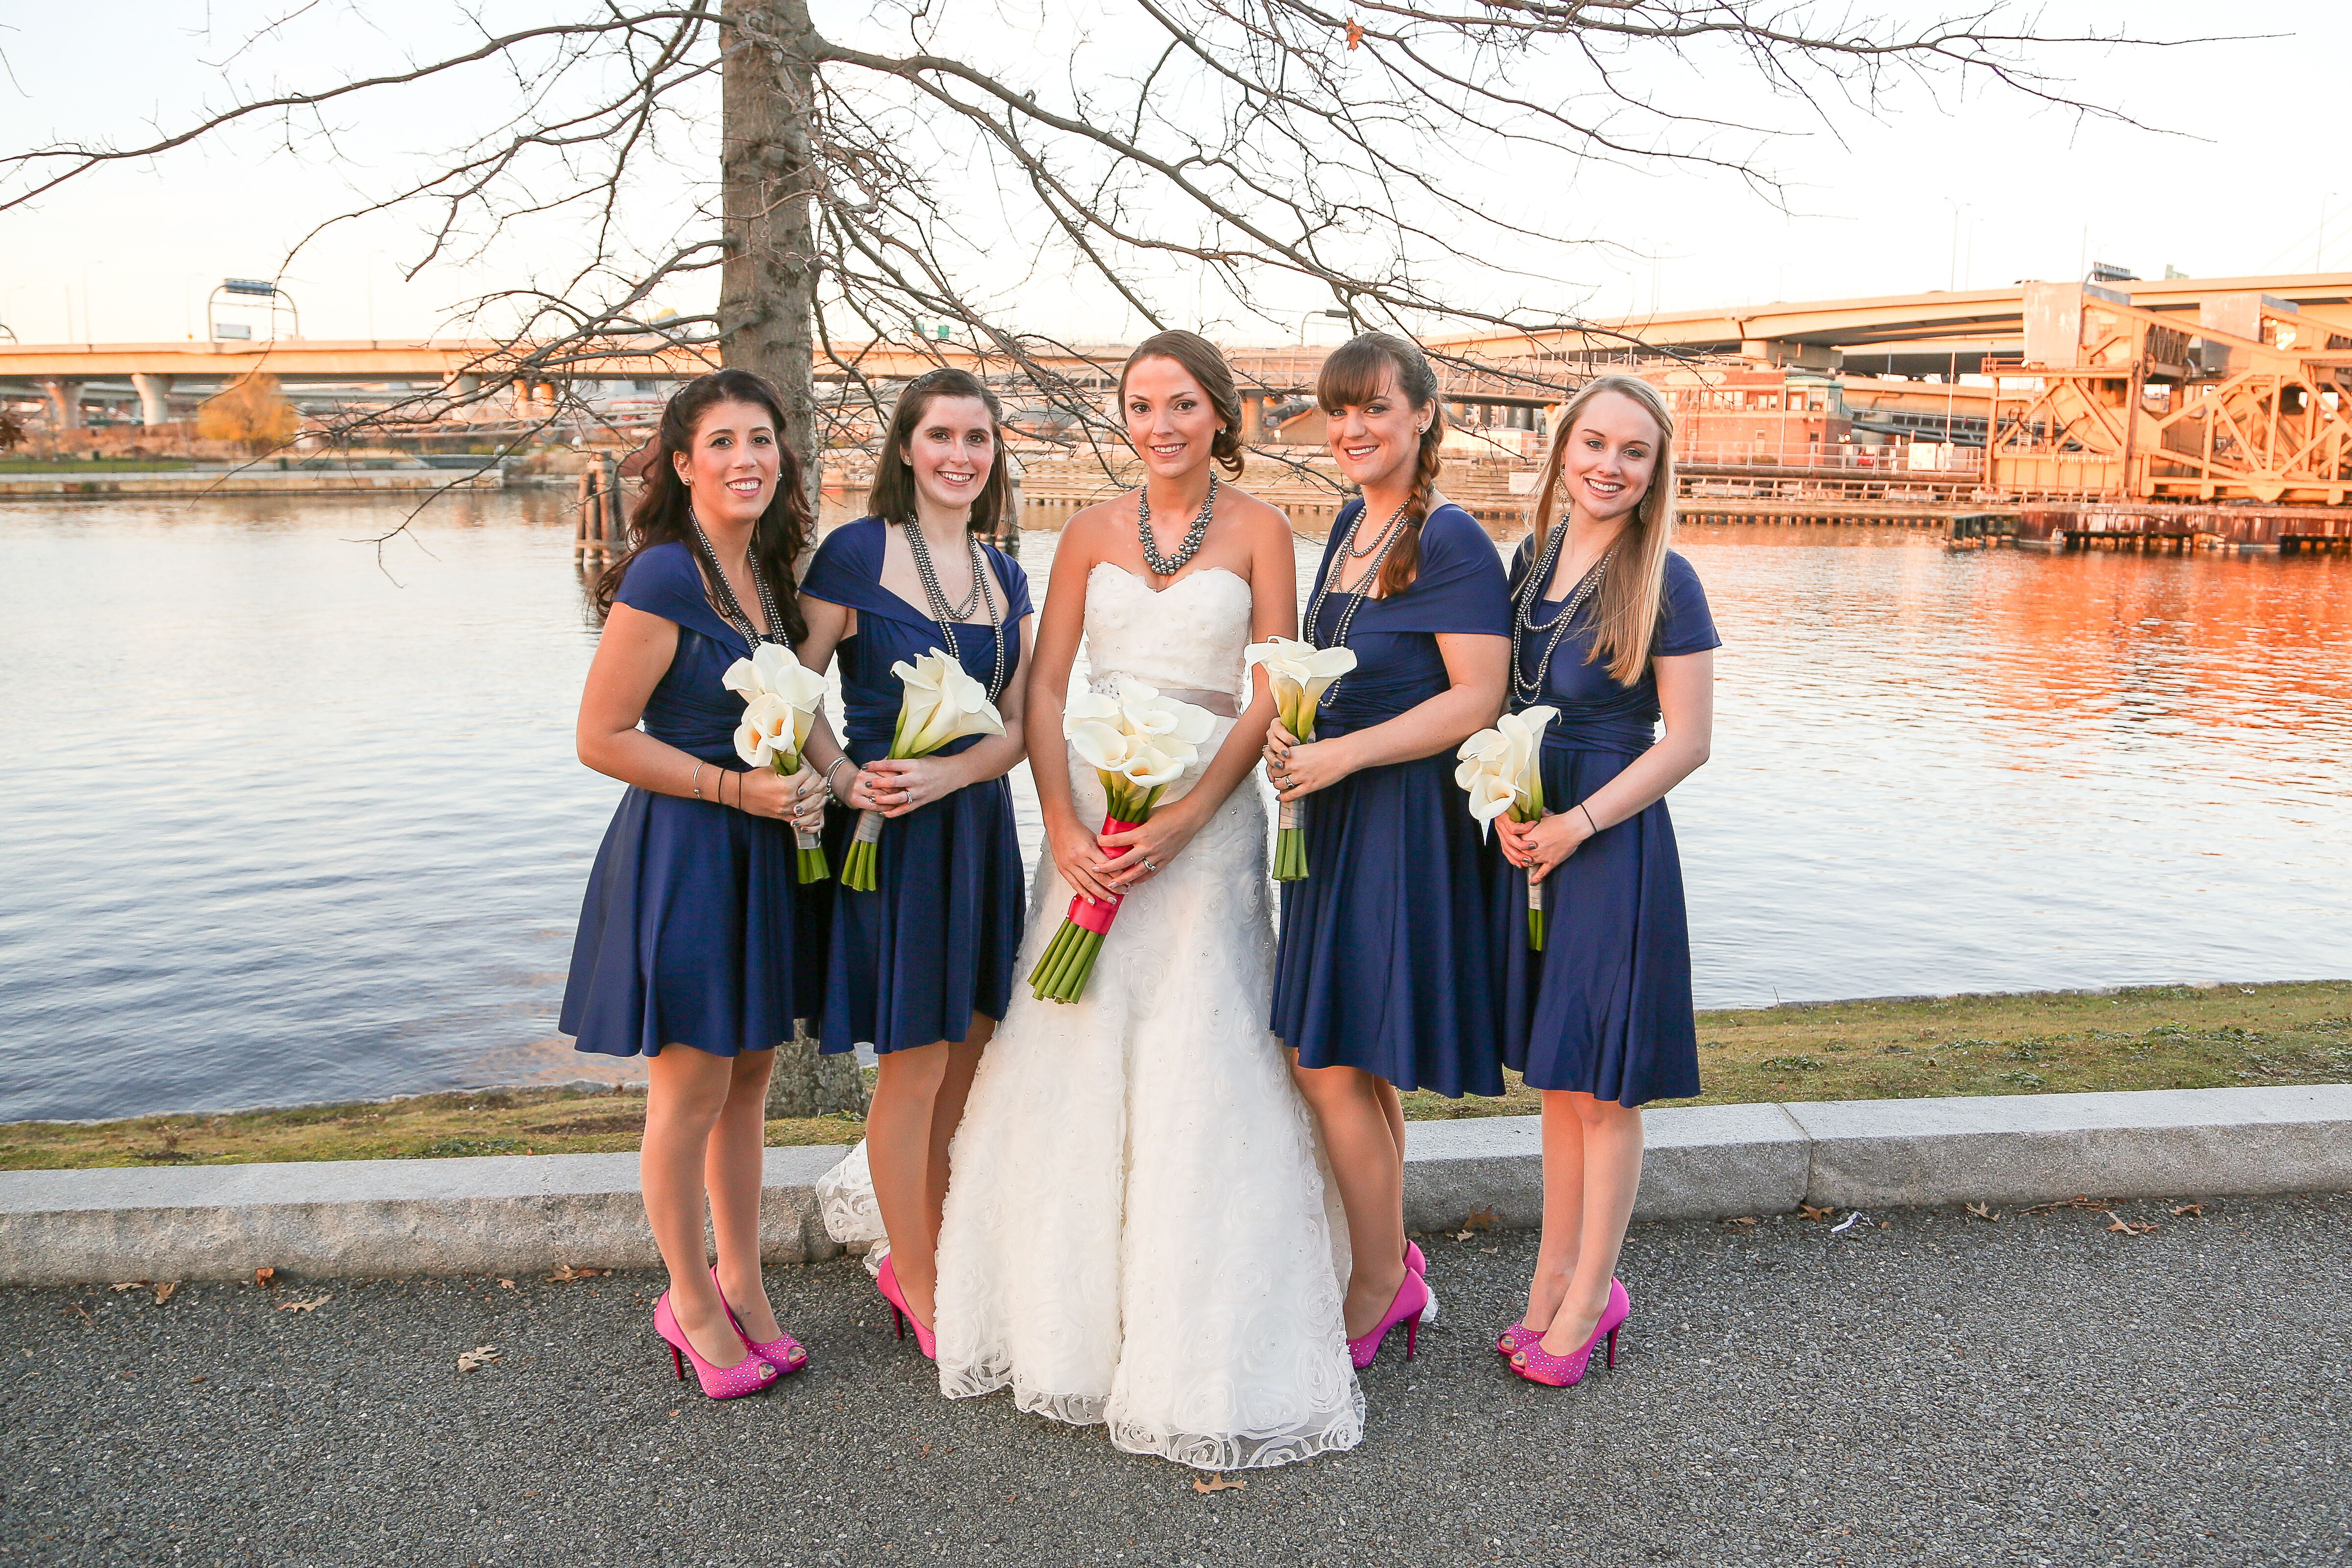 navy bridesmaids dresses with pink shoes